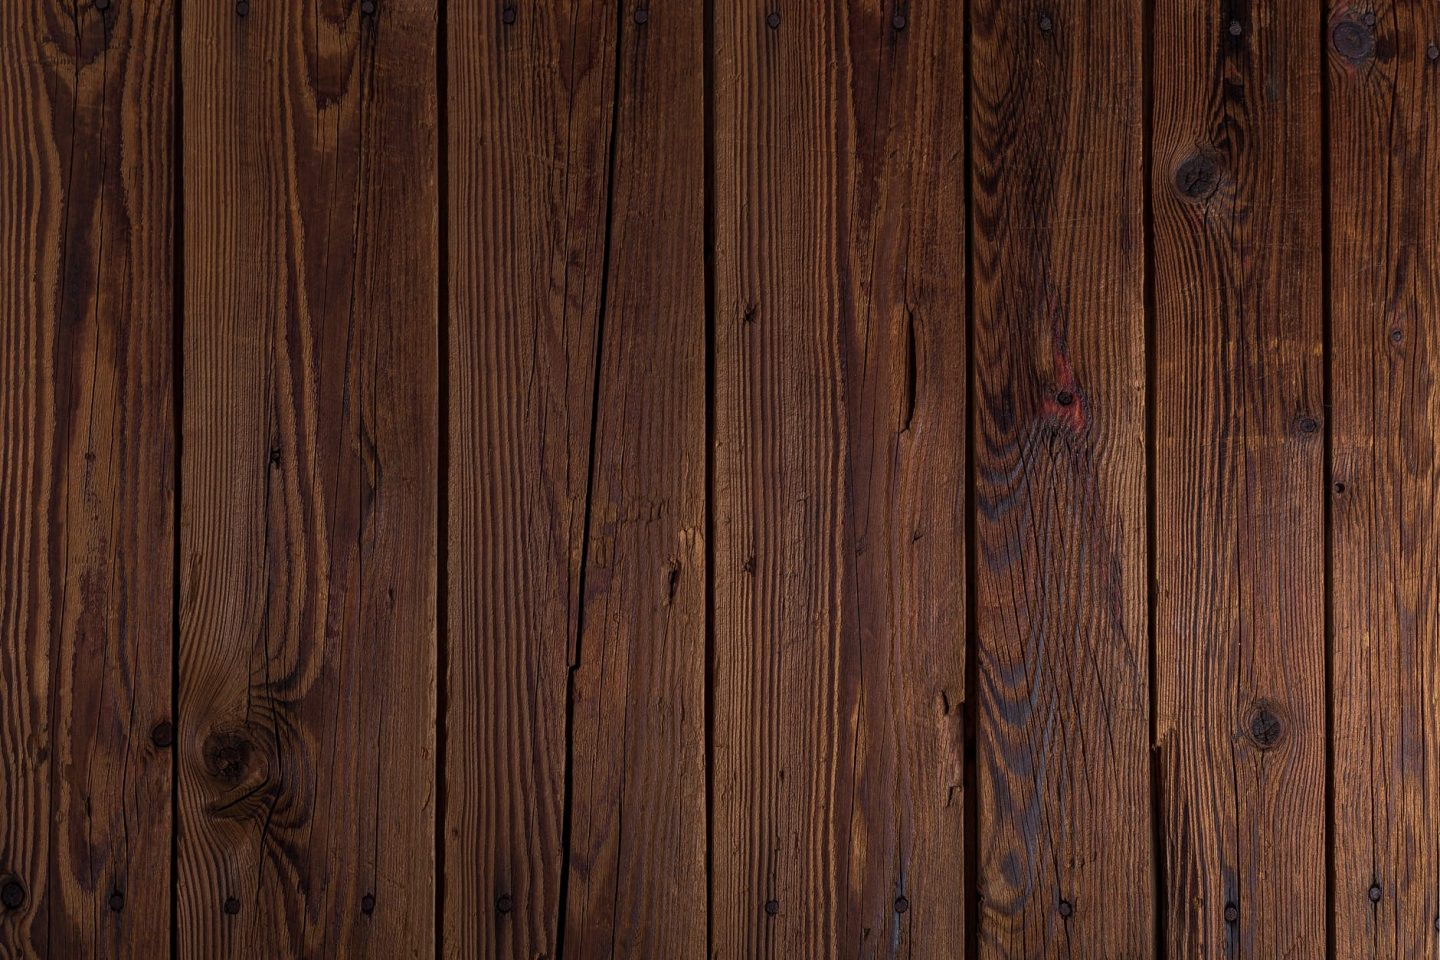 How to Choose the Best Colour for Your Wood Flooring